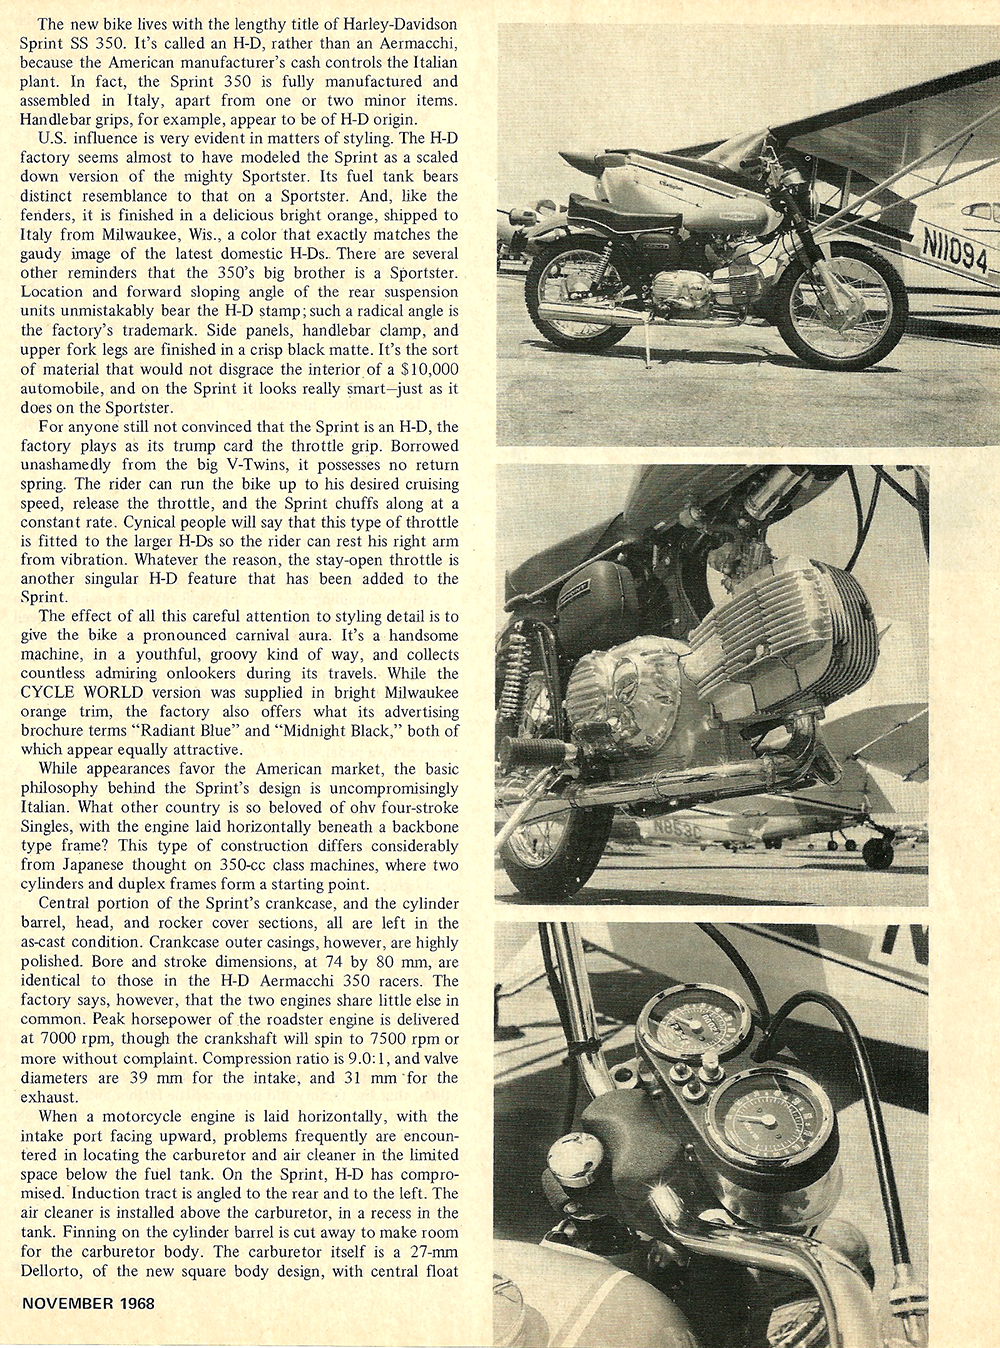 1968 Harley Sprint ss 350 road test 02.jpg